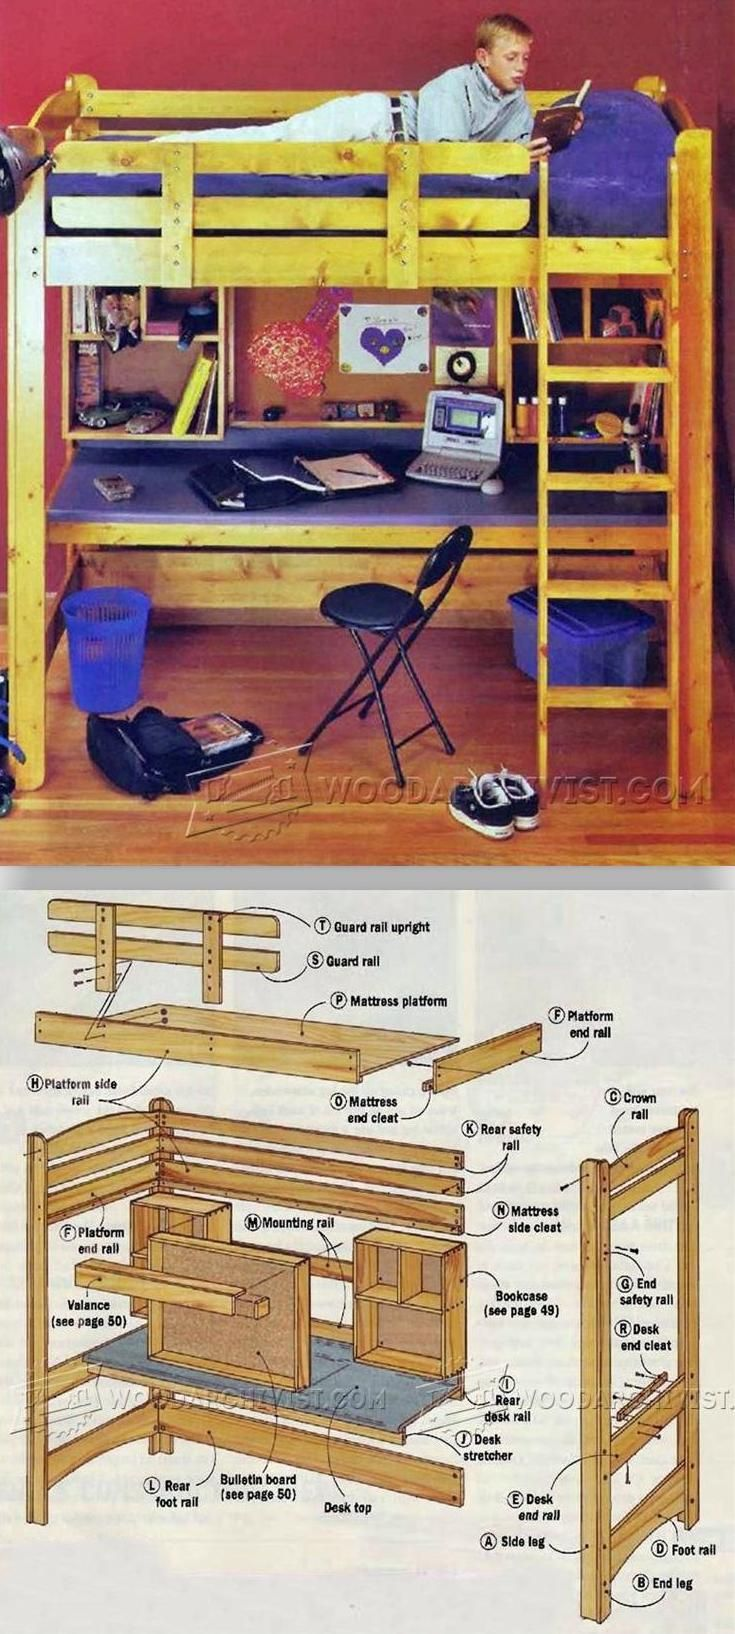 Loft bed with slide plans  Loft Bed Plans  Childrenus Furniture Plans and Projects